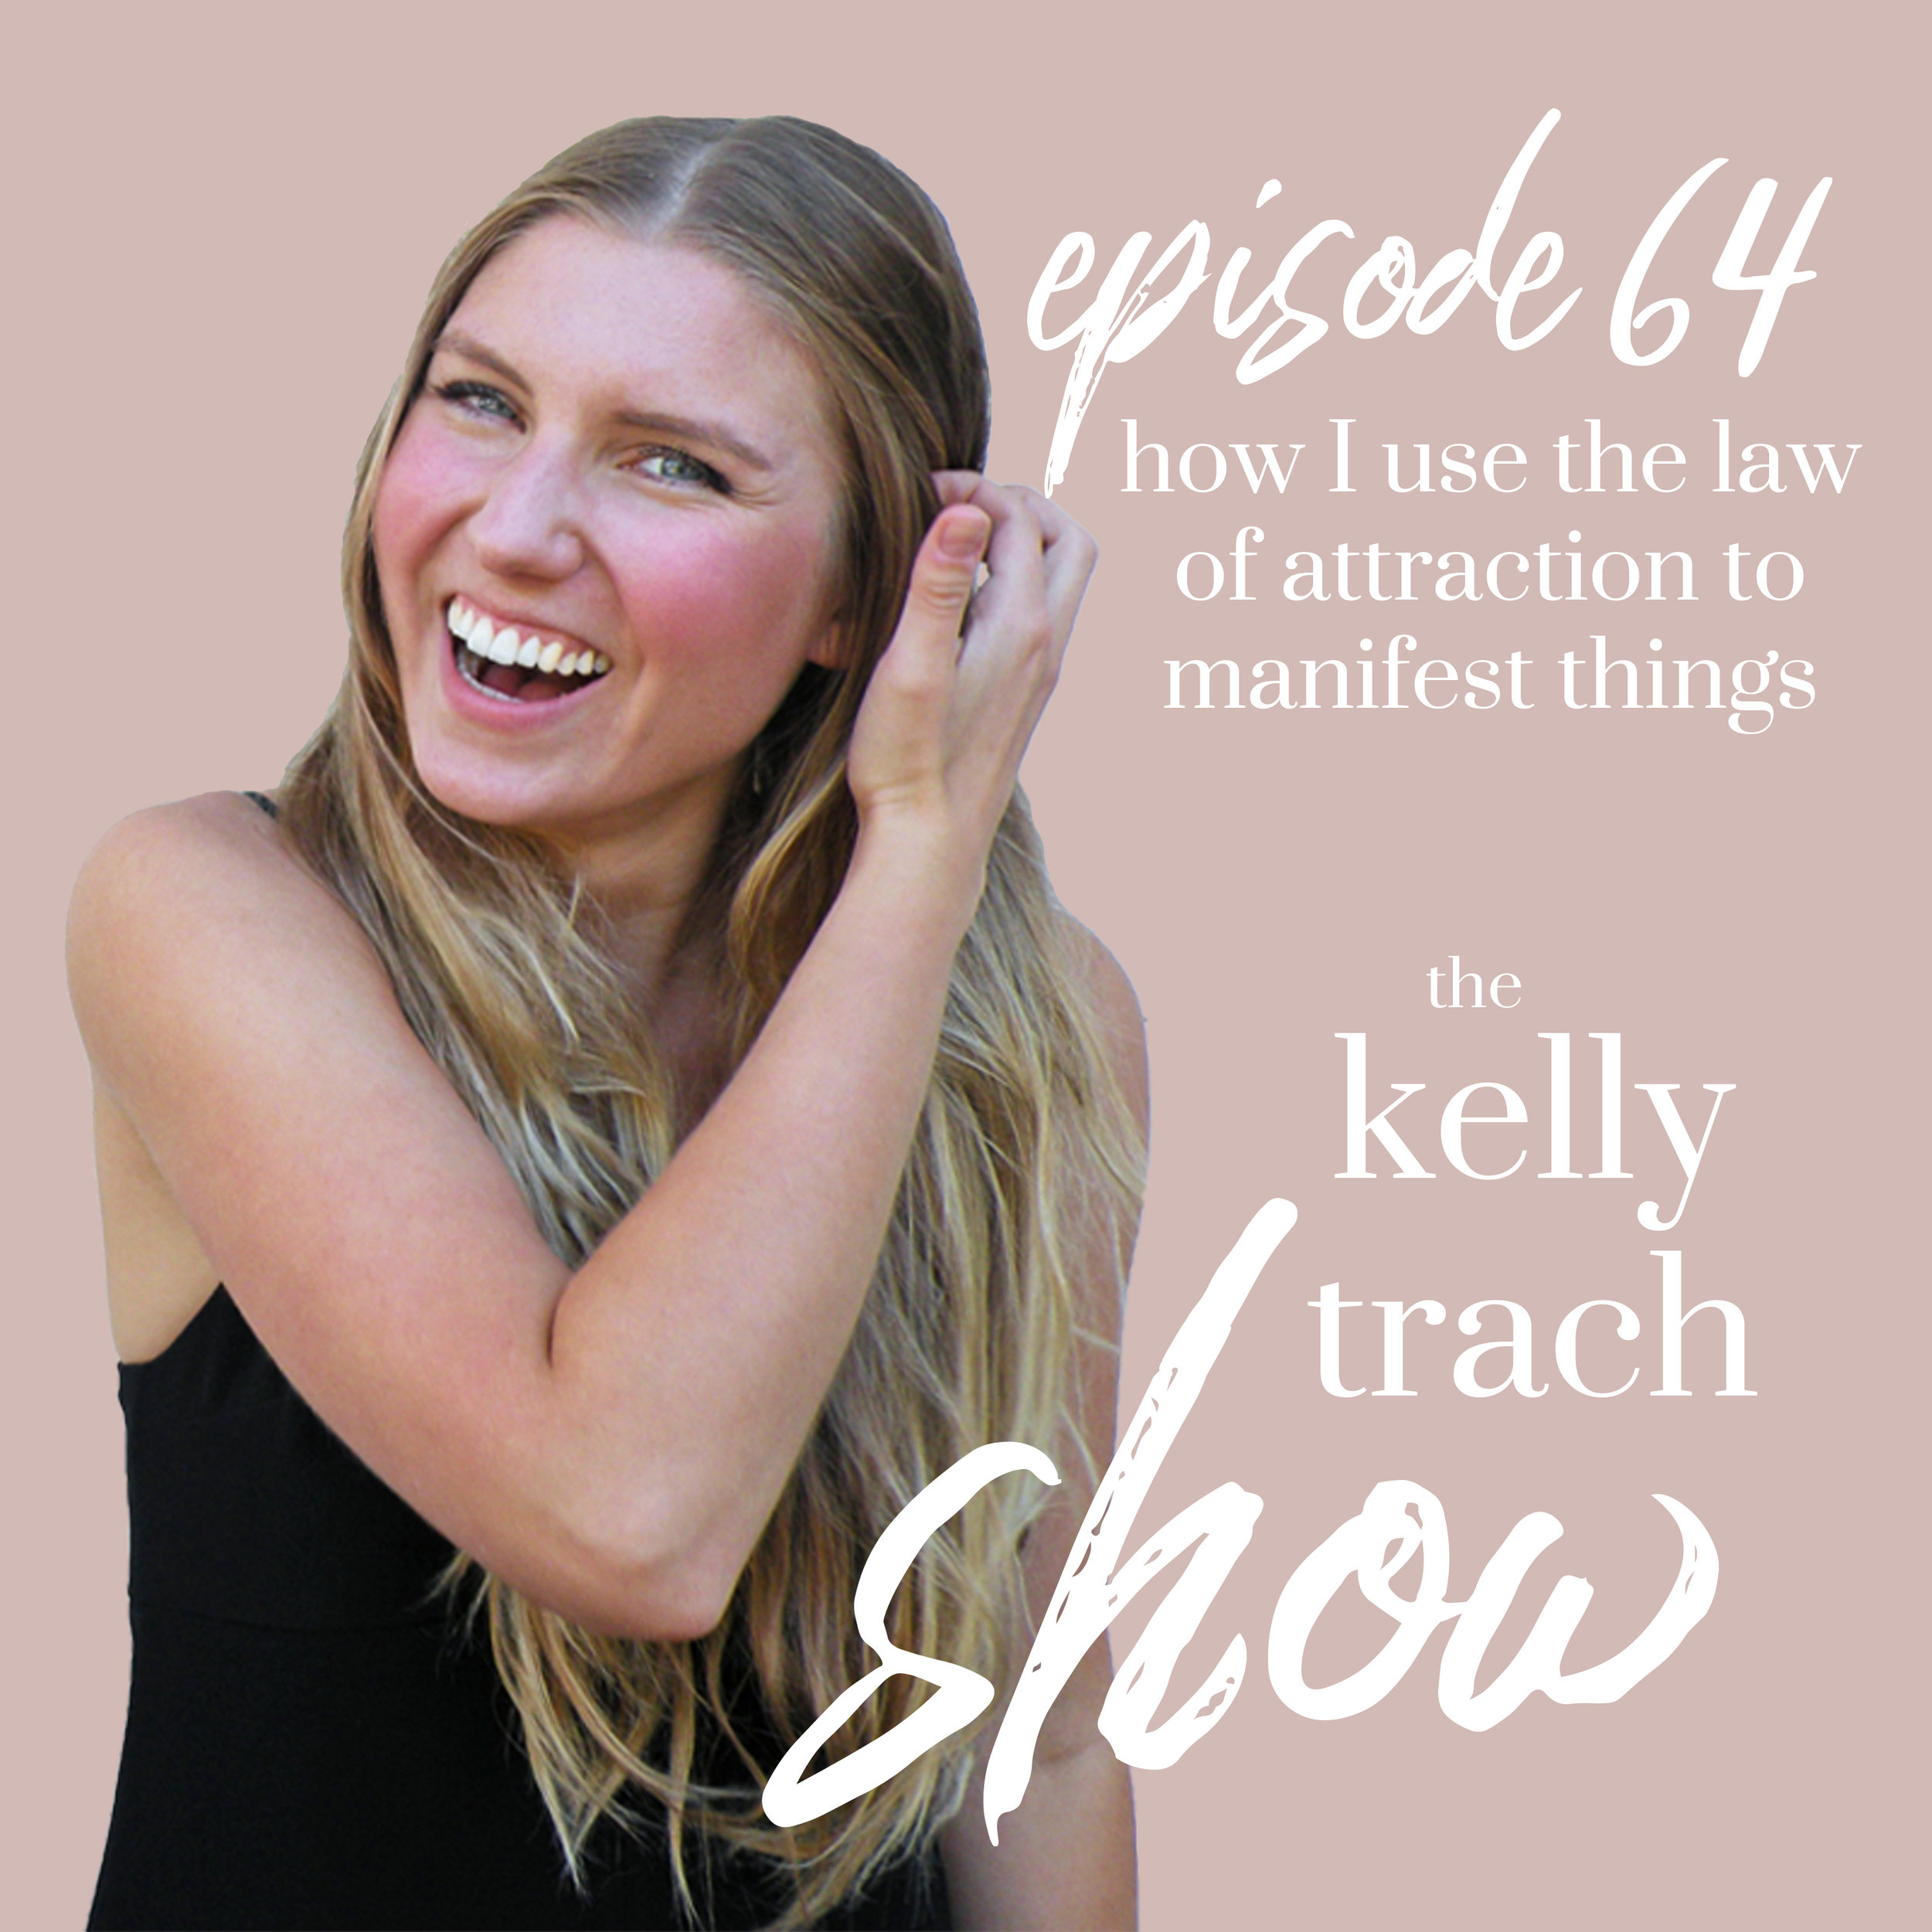 64 - How I Use the Law of Attraction to Manifest Stuff - The Kelly Trach Show.jpg